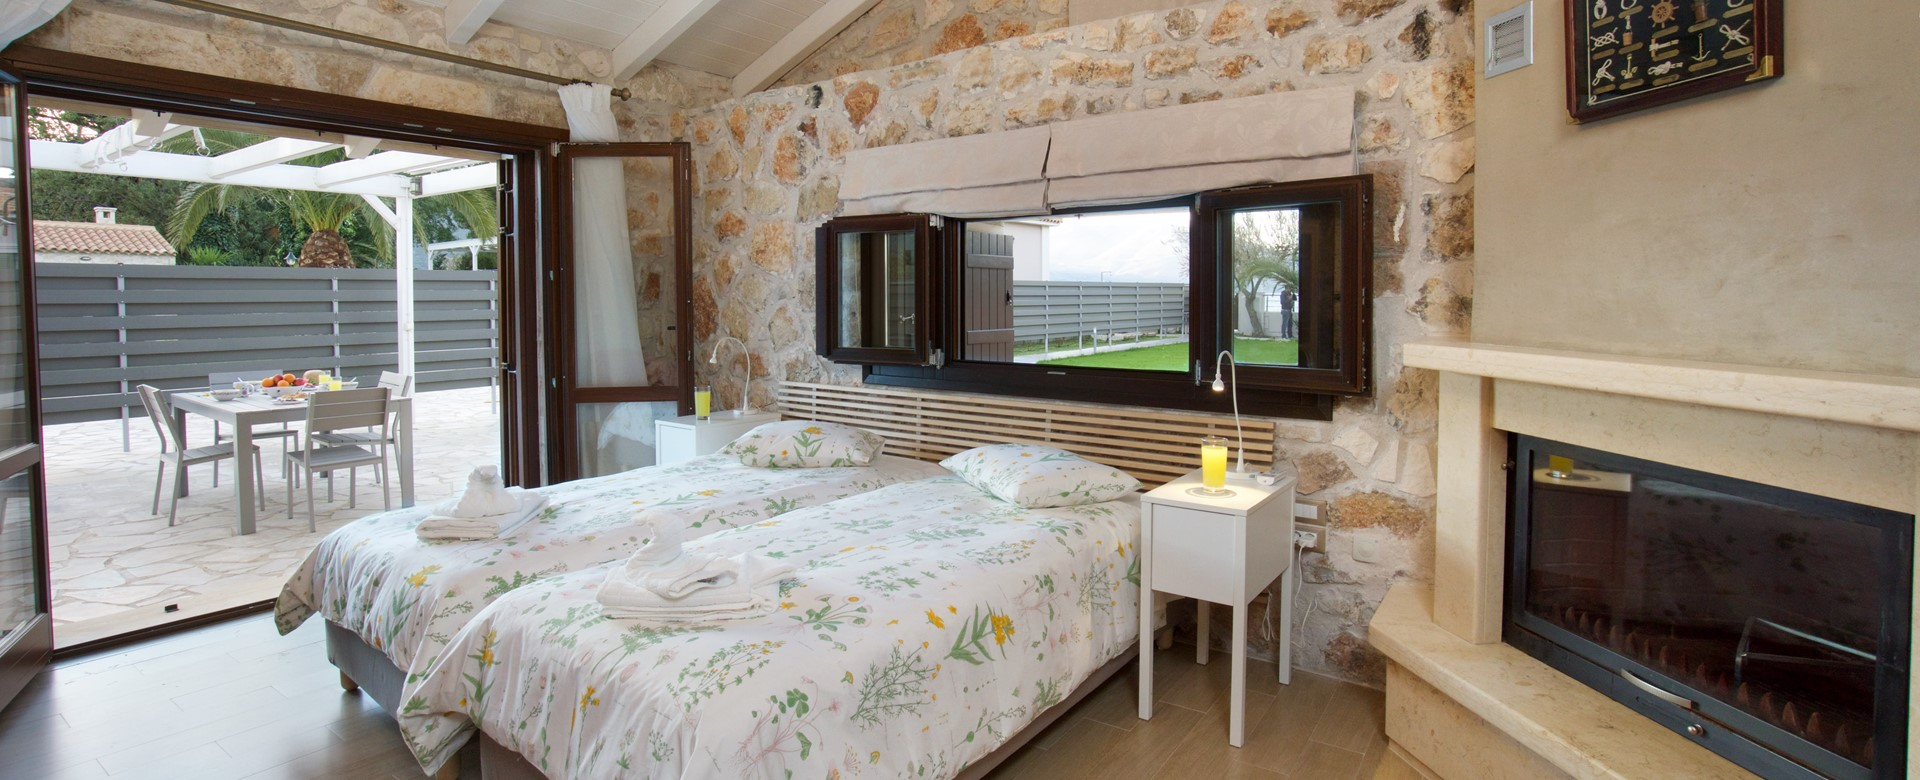 Exceptionally decorated twin room with bifold door access to outside terrace at Villa Theano, Sami, Kefalonia, Greek Islands